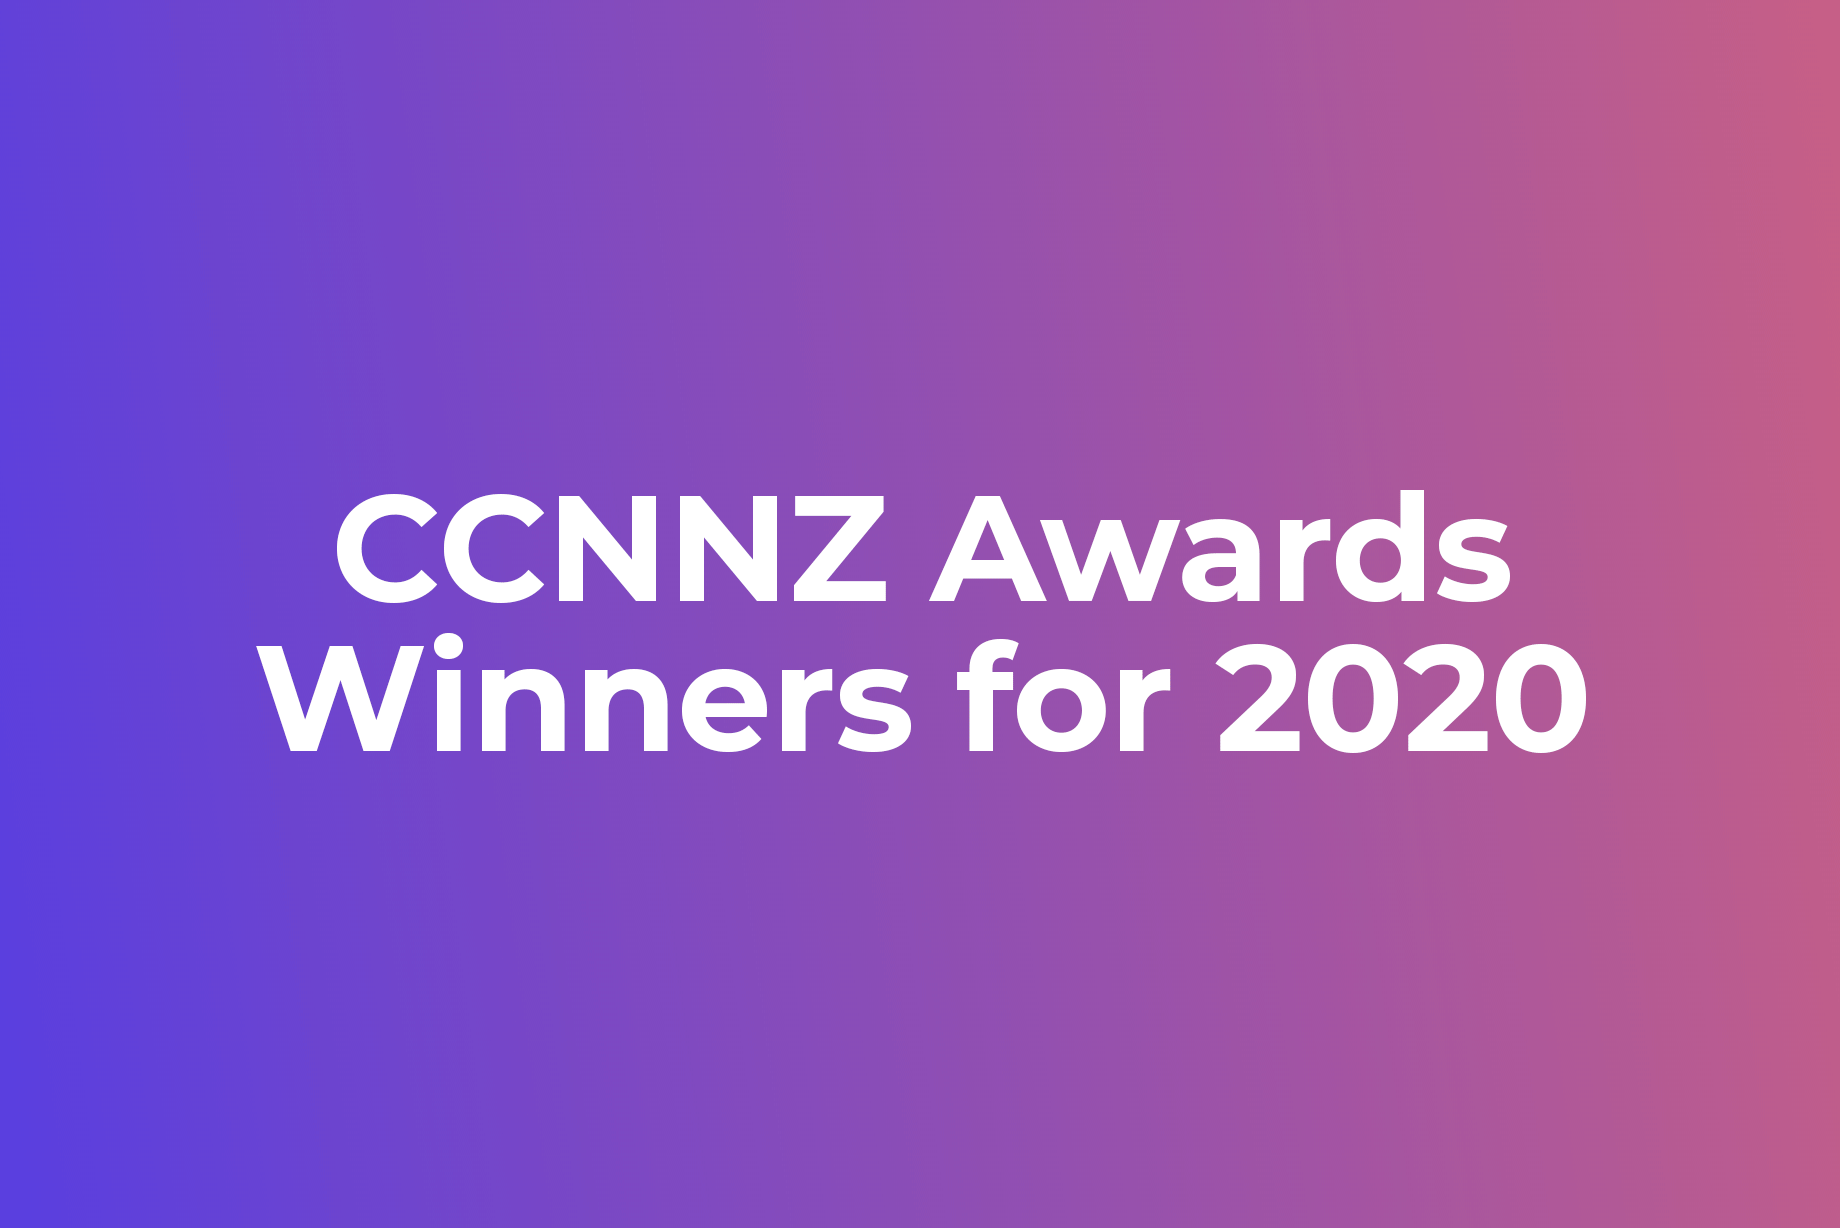 Congratulating the CCNNZ Awards Winners for 2020!!